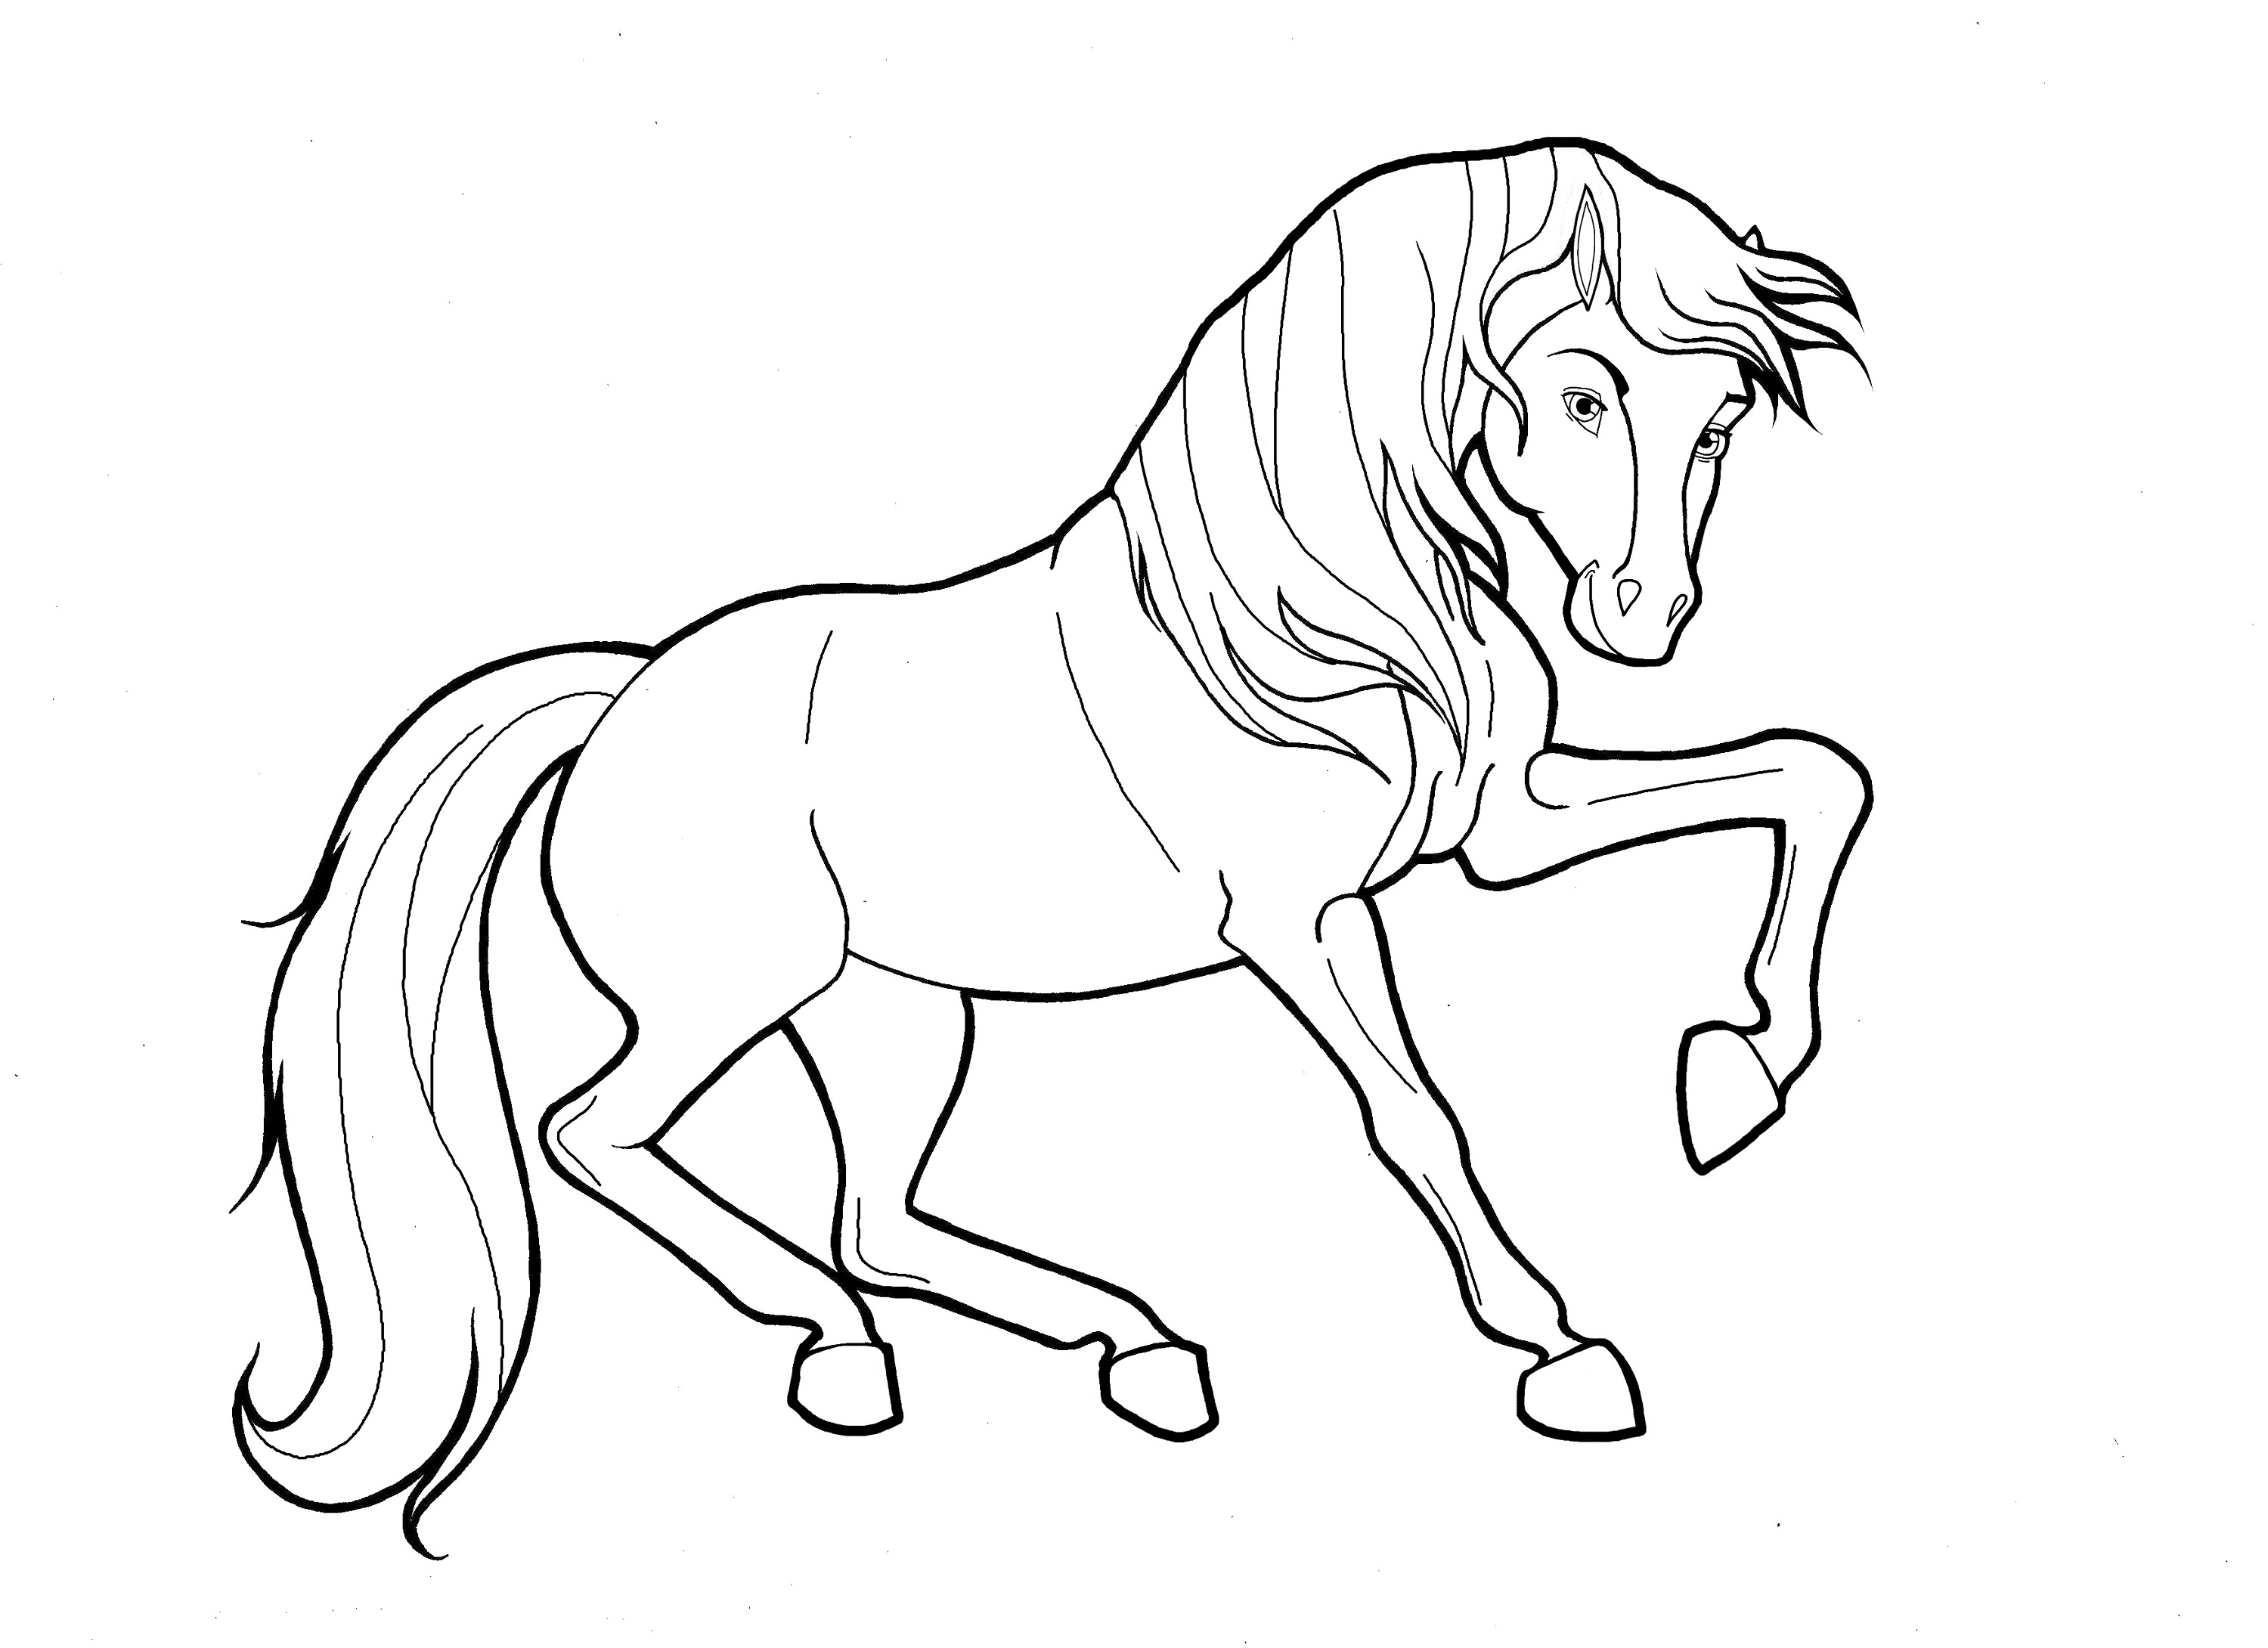 horse pictures to print fun horse coloring pages for your kids printable to horse print pictures